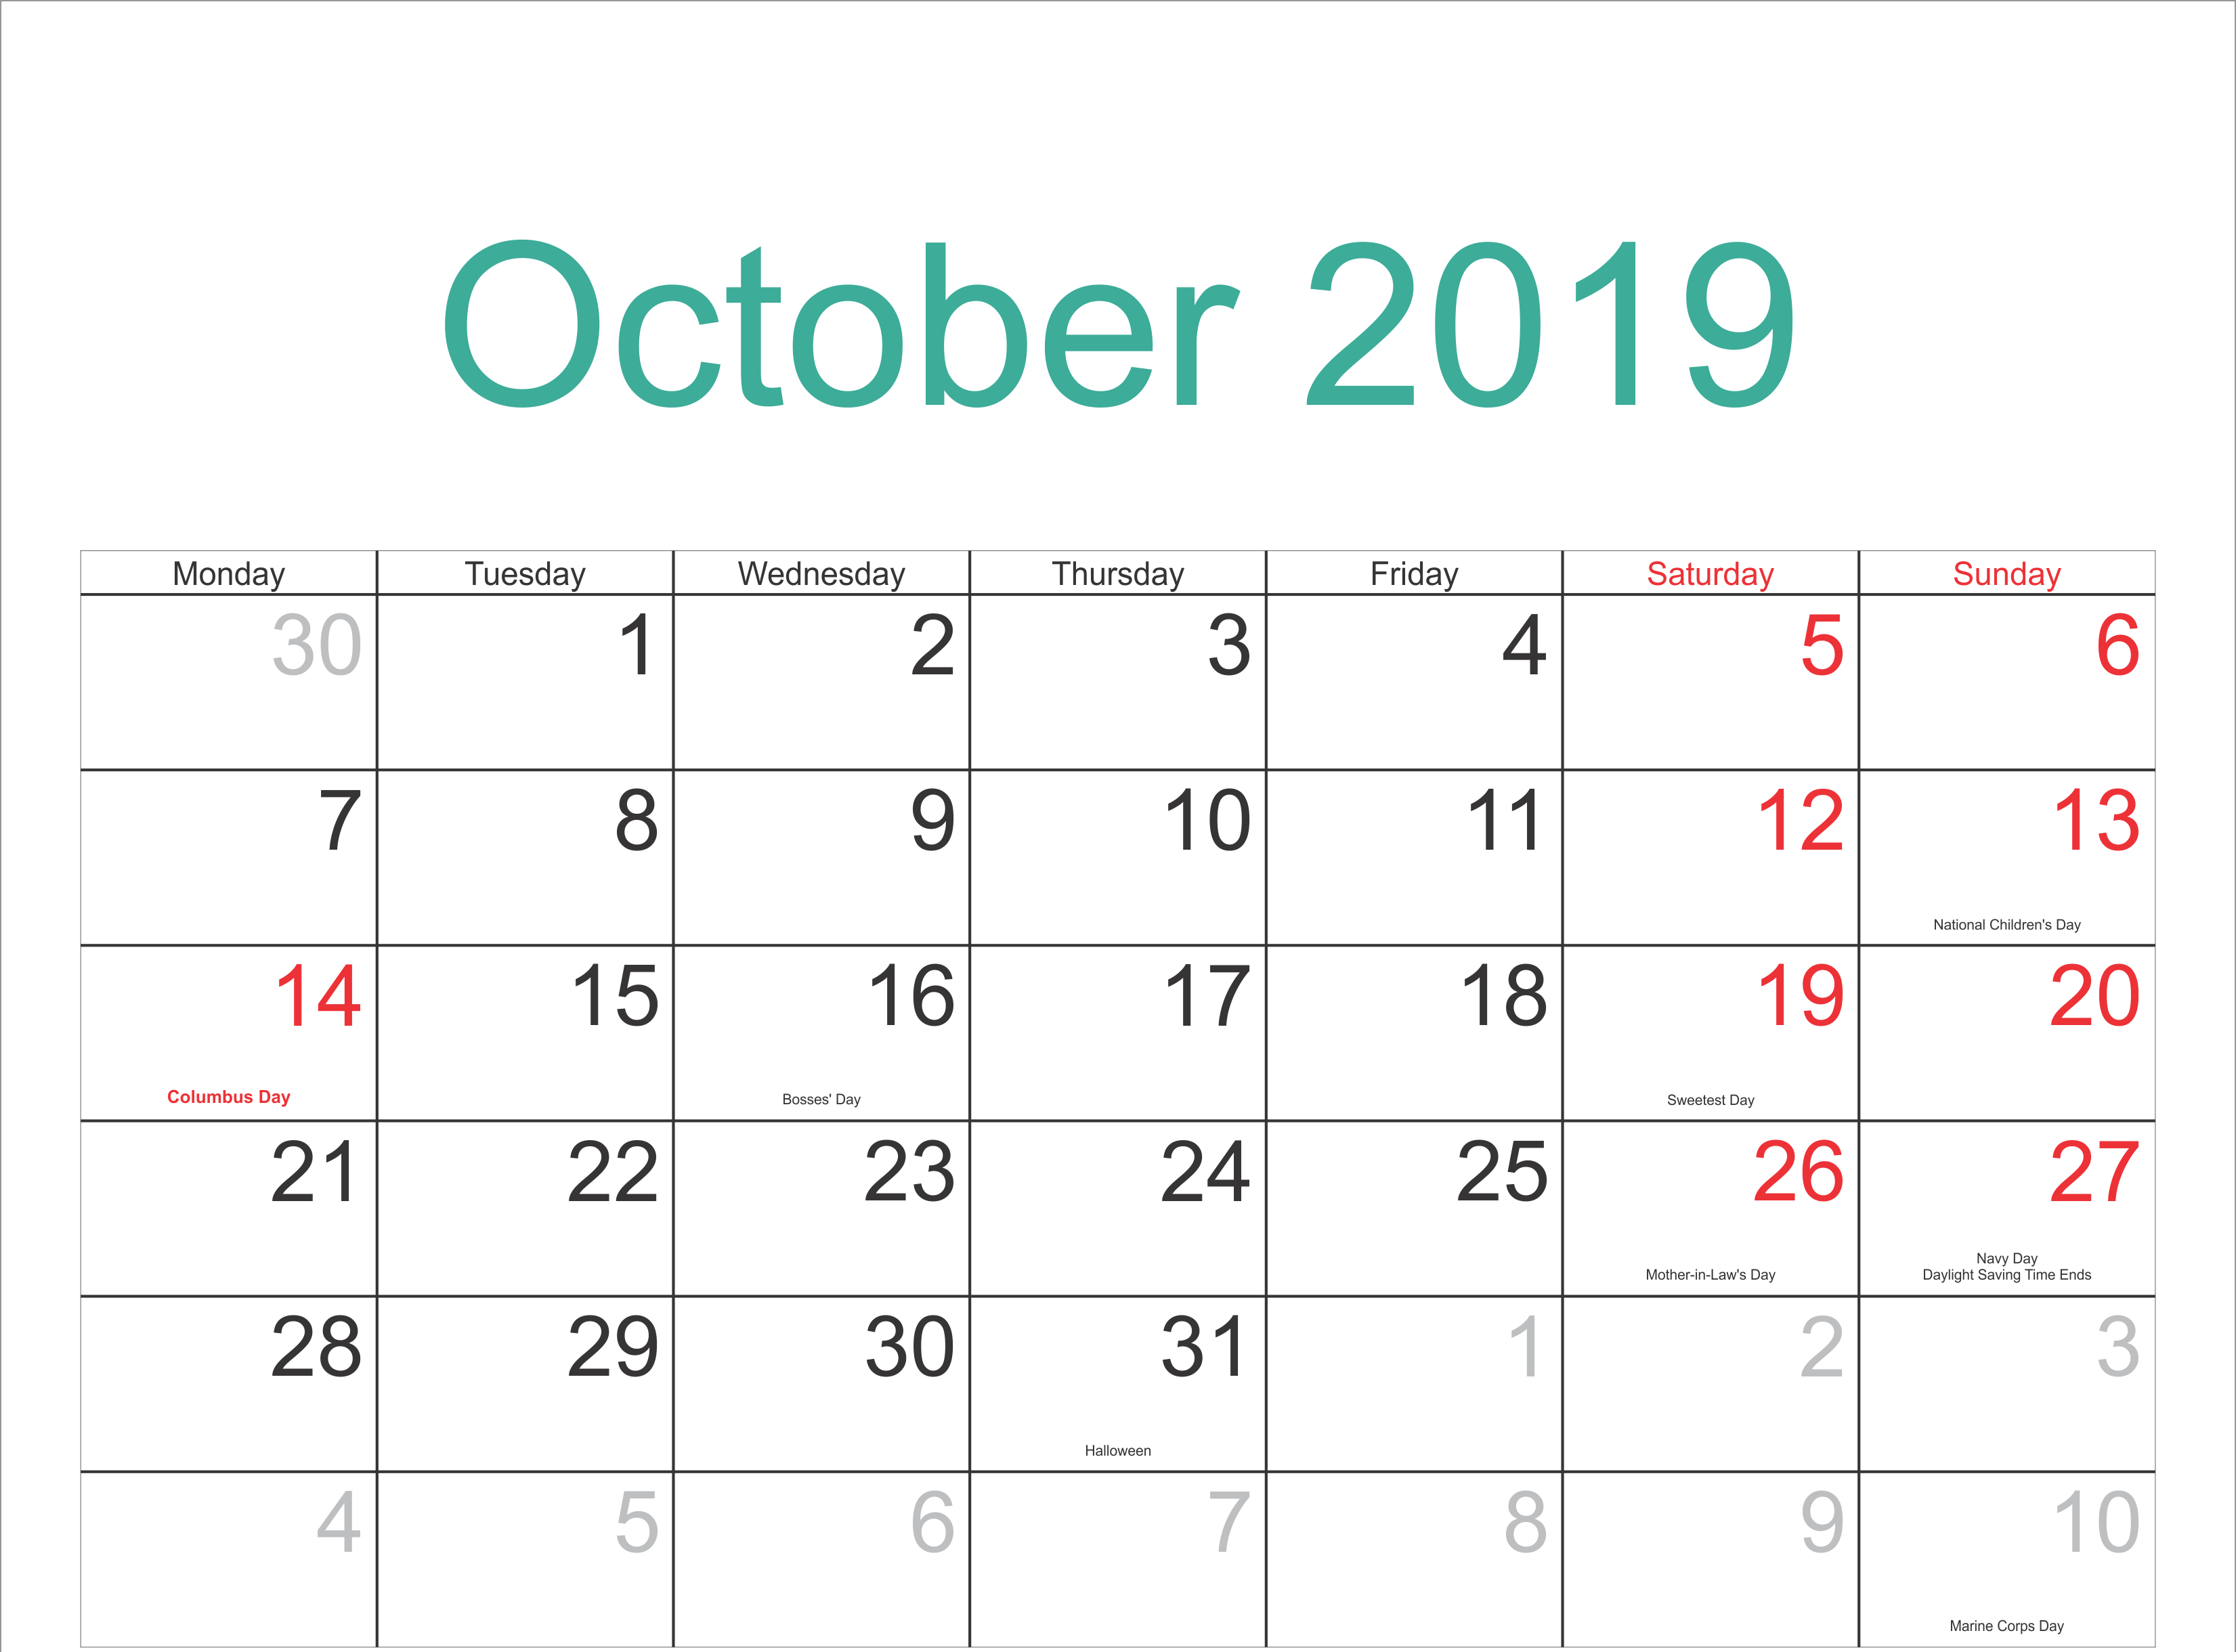 October 2019 Calendar With Holidays Template | Monthly